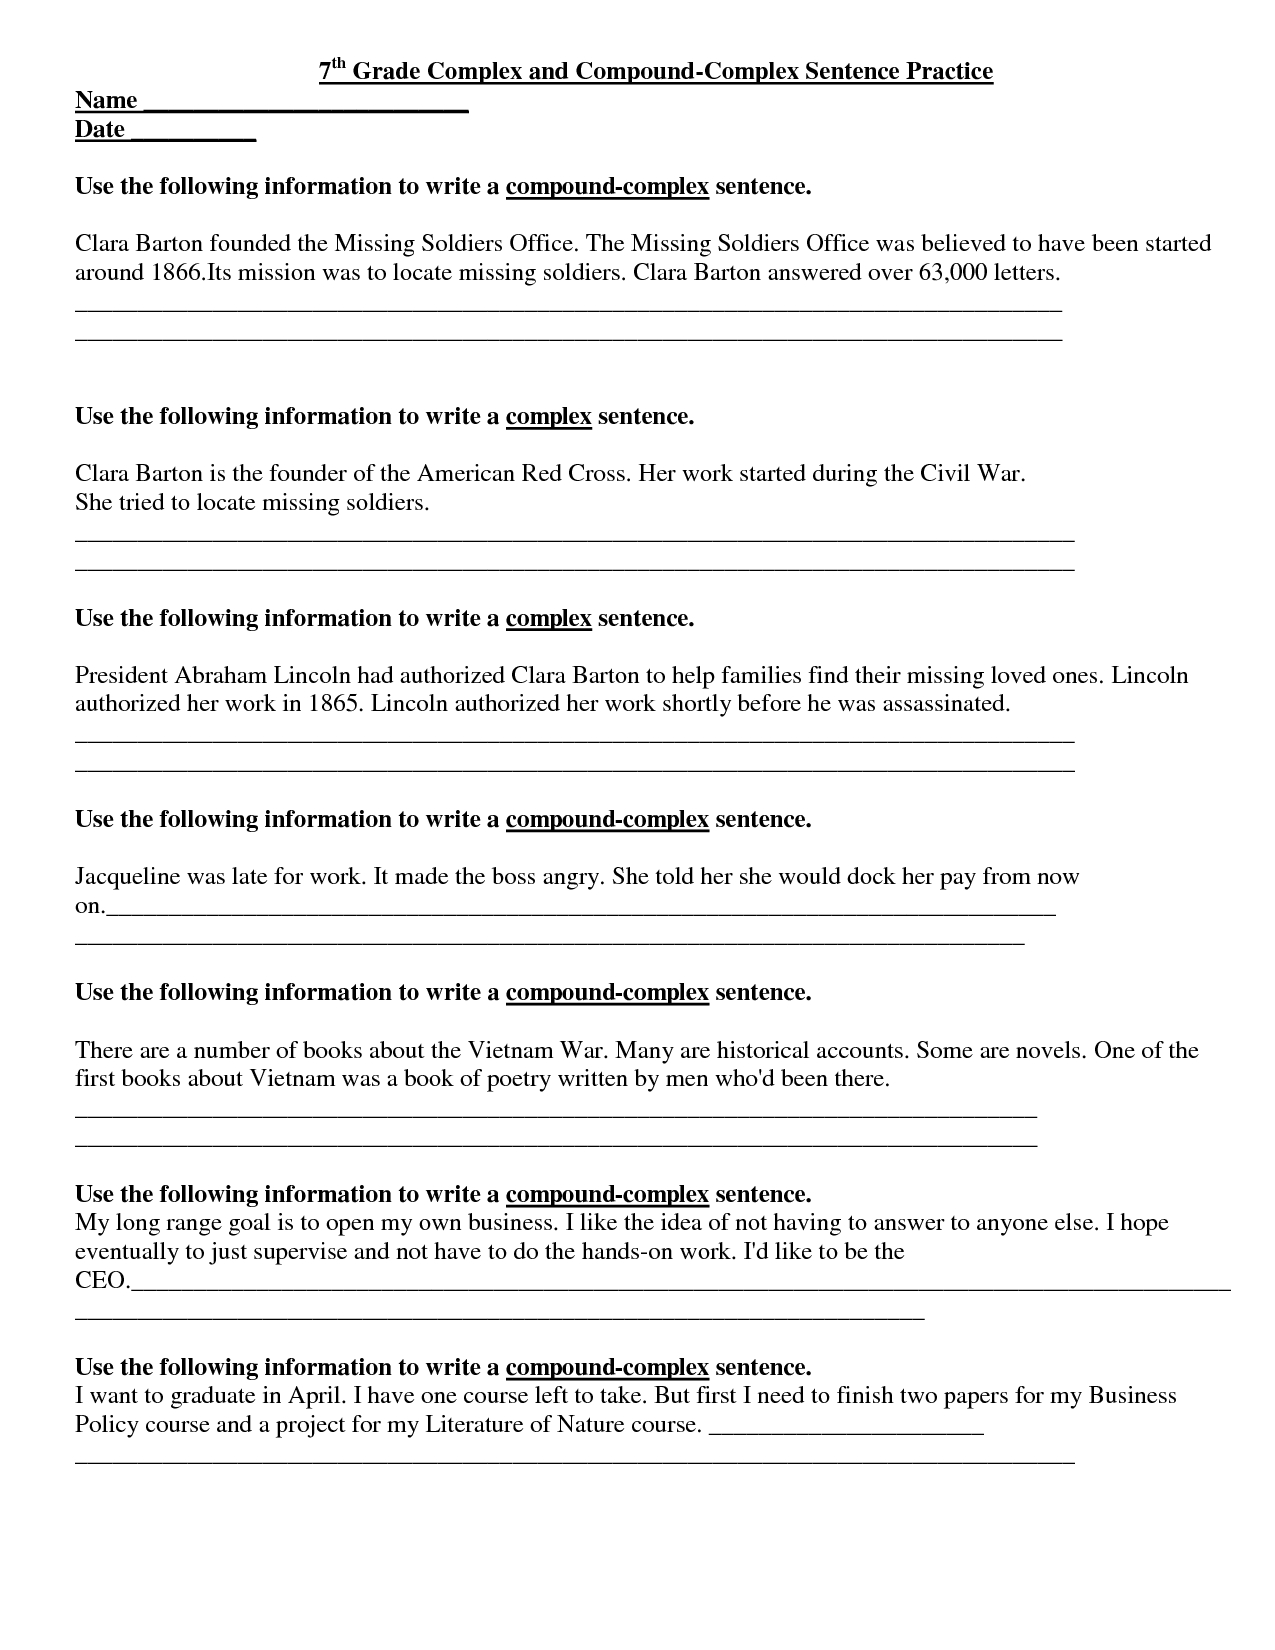 Free 4Th Grade Reading Comprehension Passages And Questions - 36 - Free Printable Stories For 4Th Graders